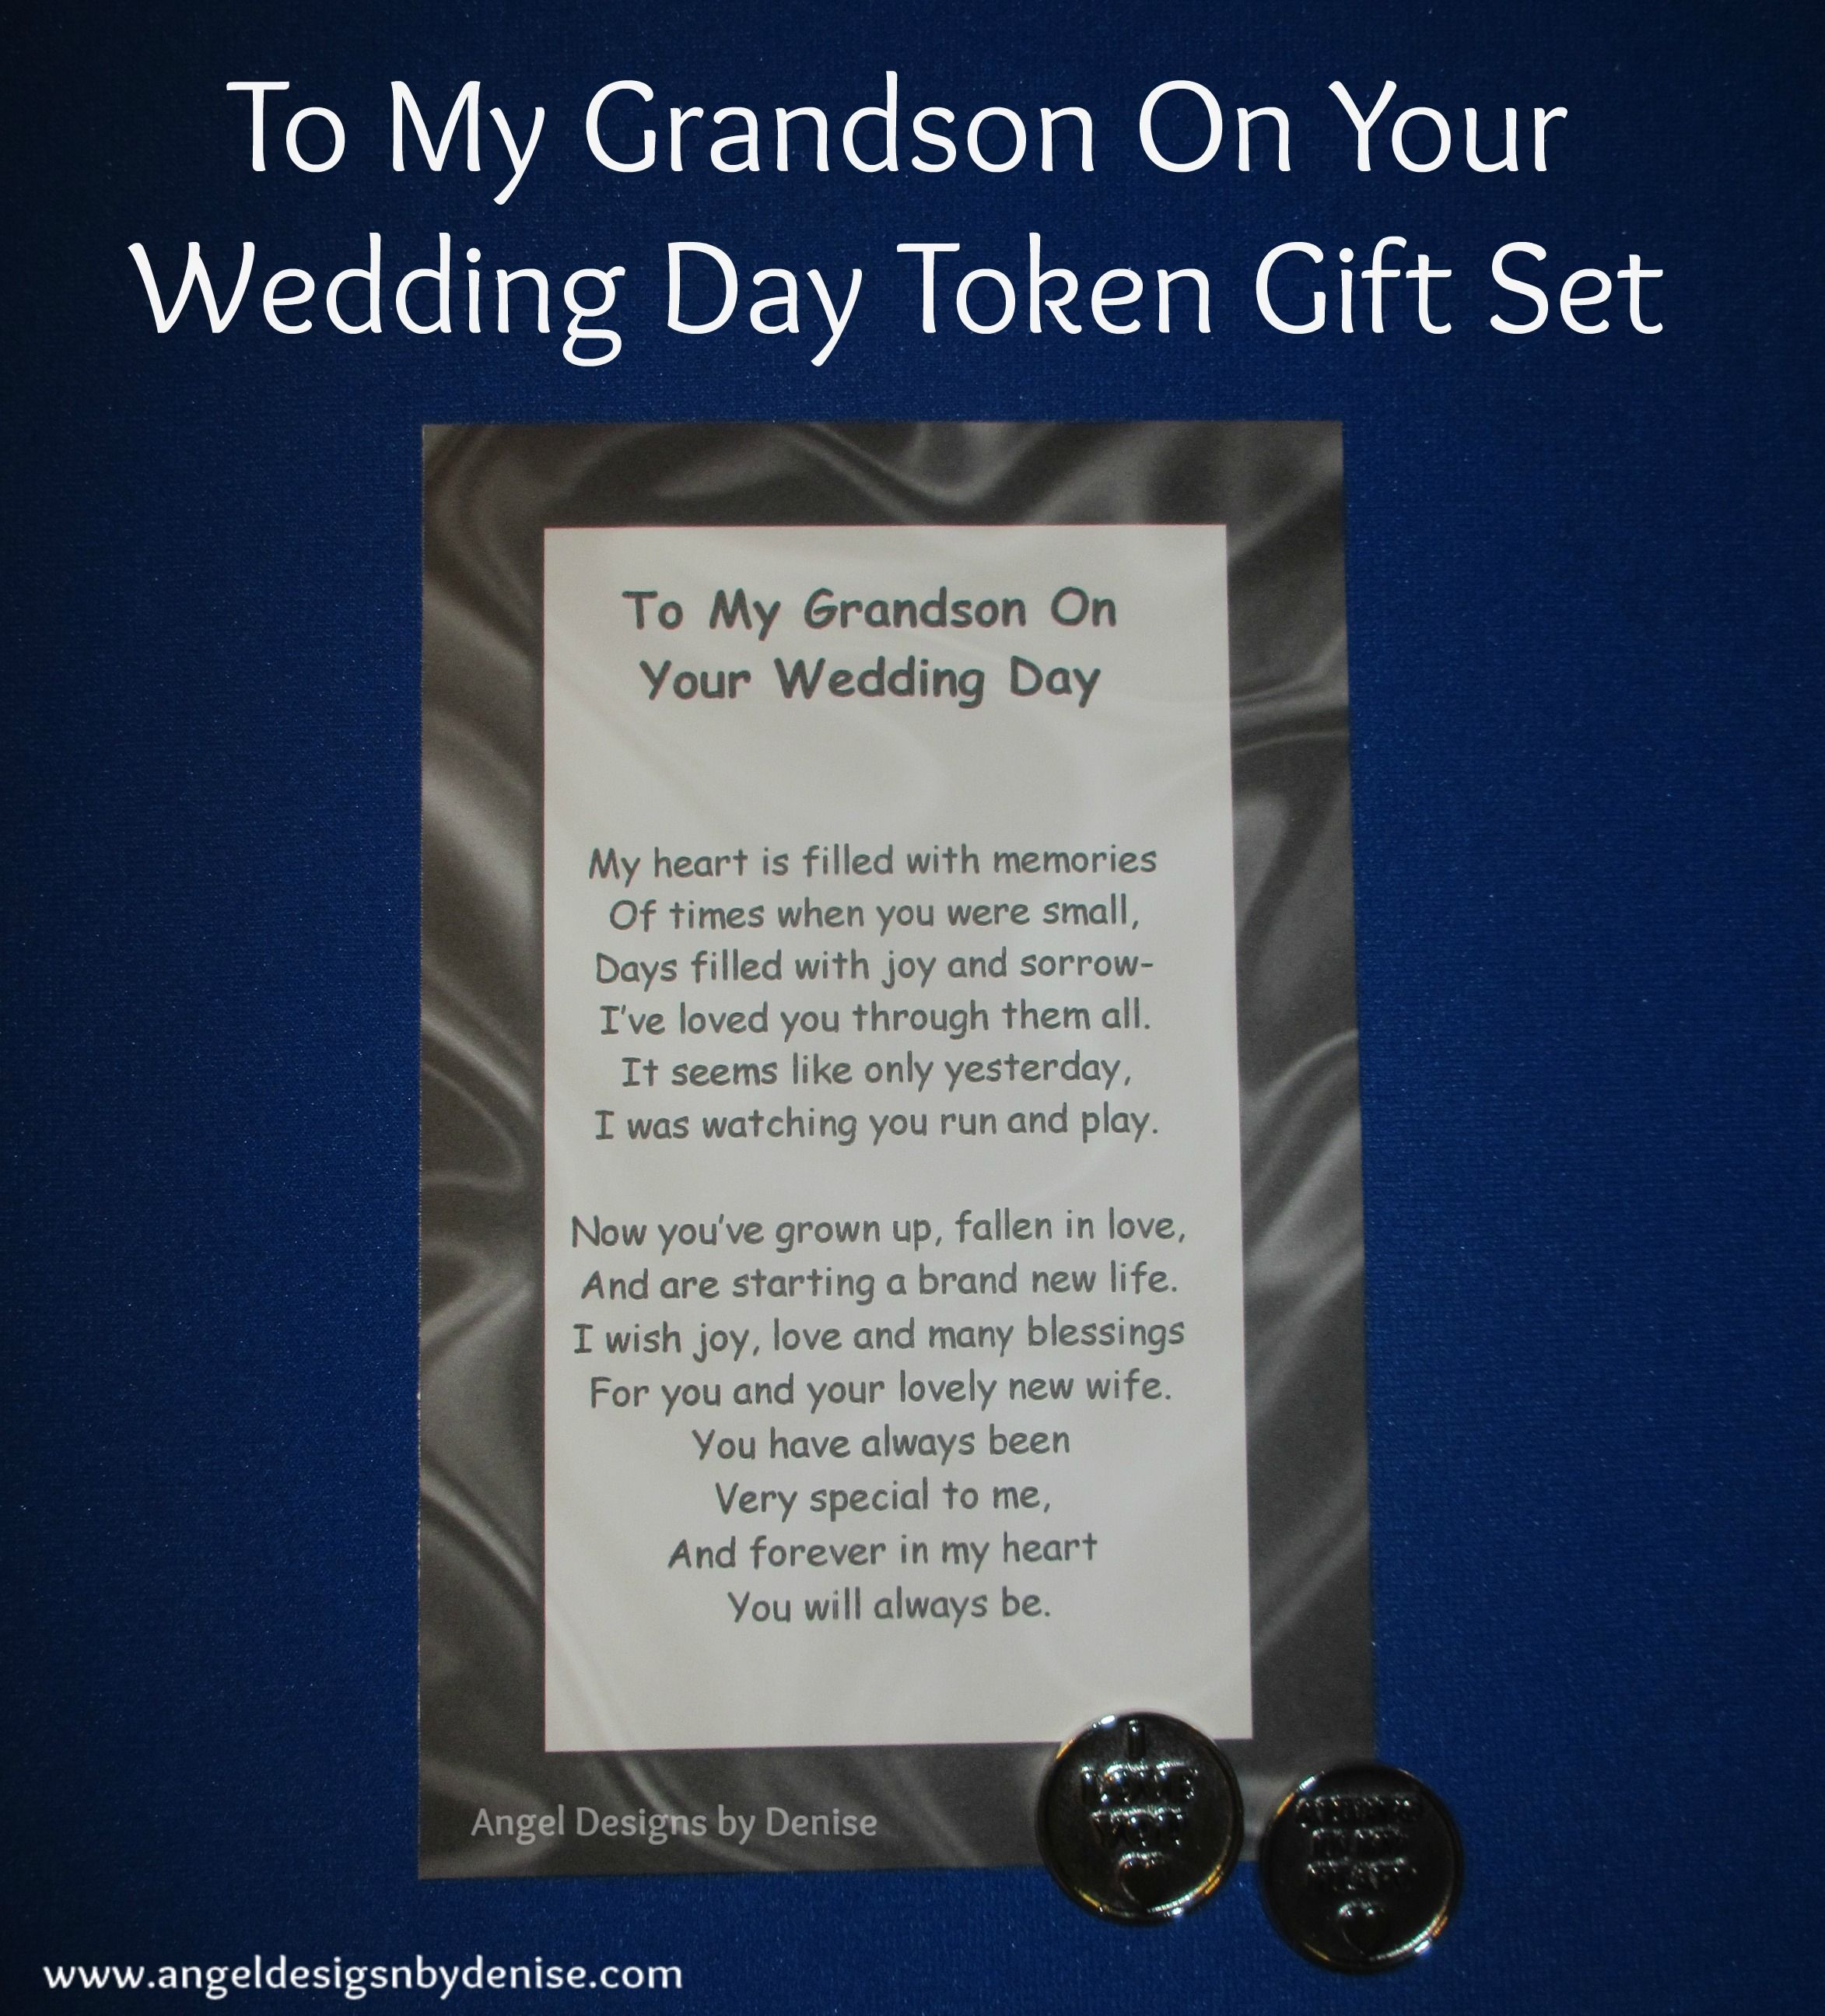 Give This Grandson Token Gift Set To Your On His Wedding Day Is